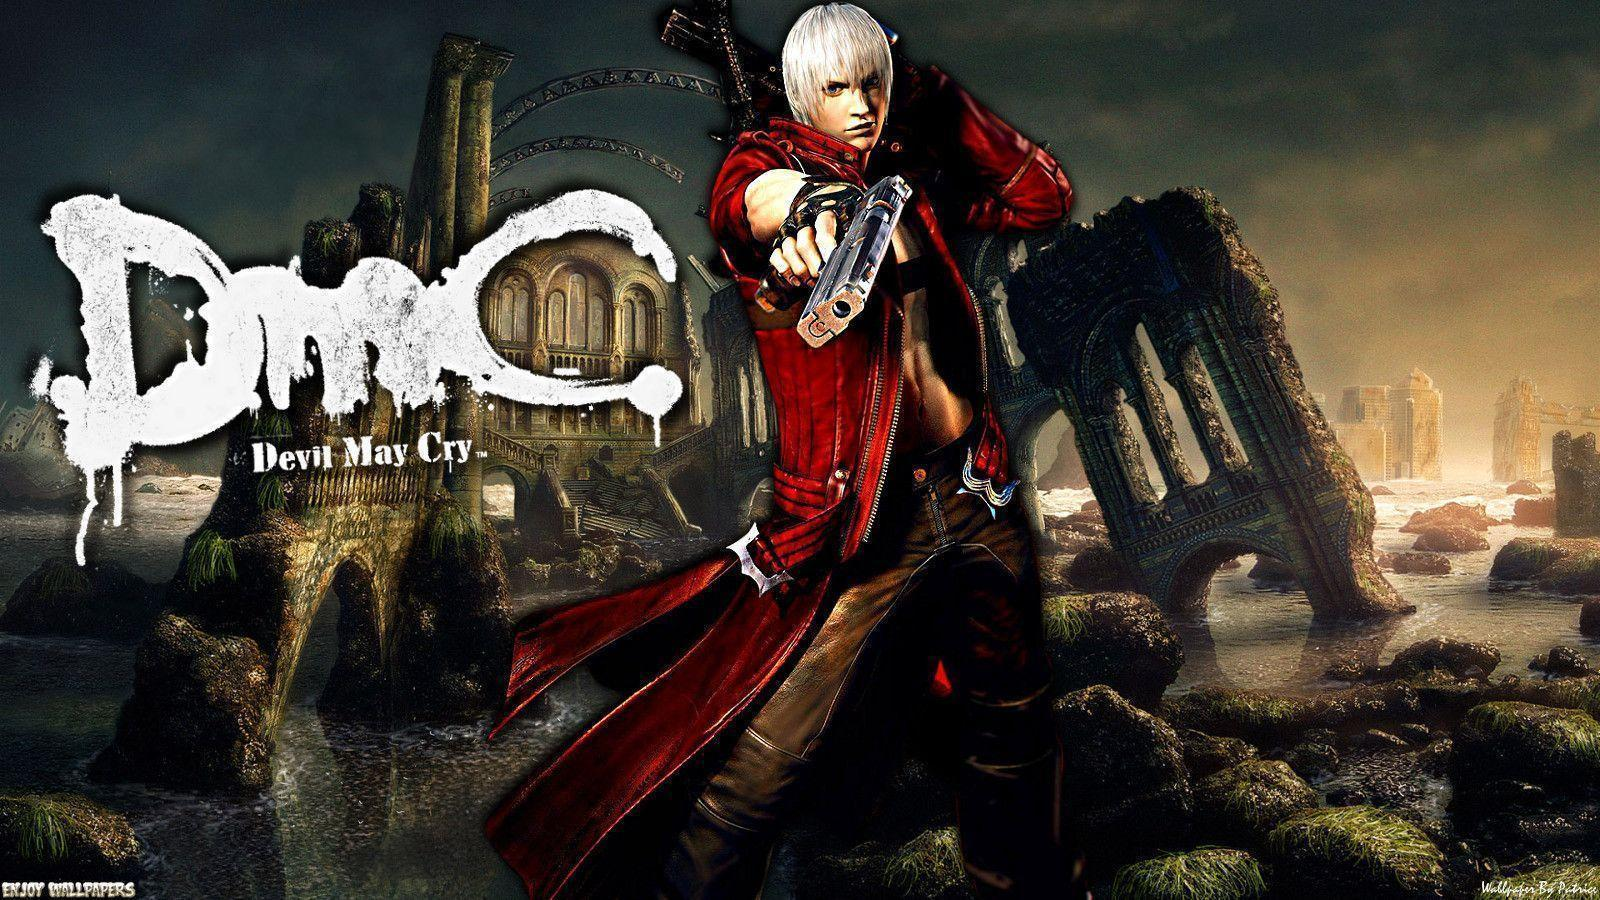 Devil may cry hd wallpapers wallpaper cave devil may cry 2 dante wallpaper hd wallpaper voltagebd Images